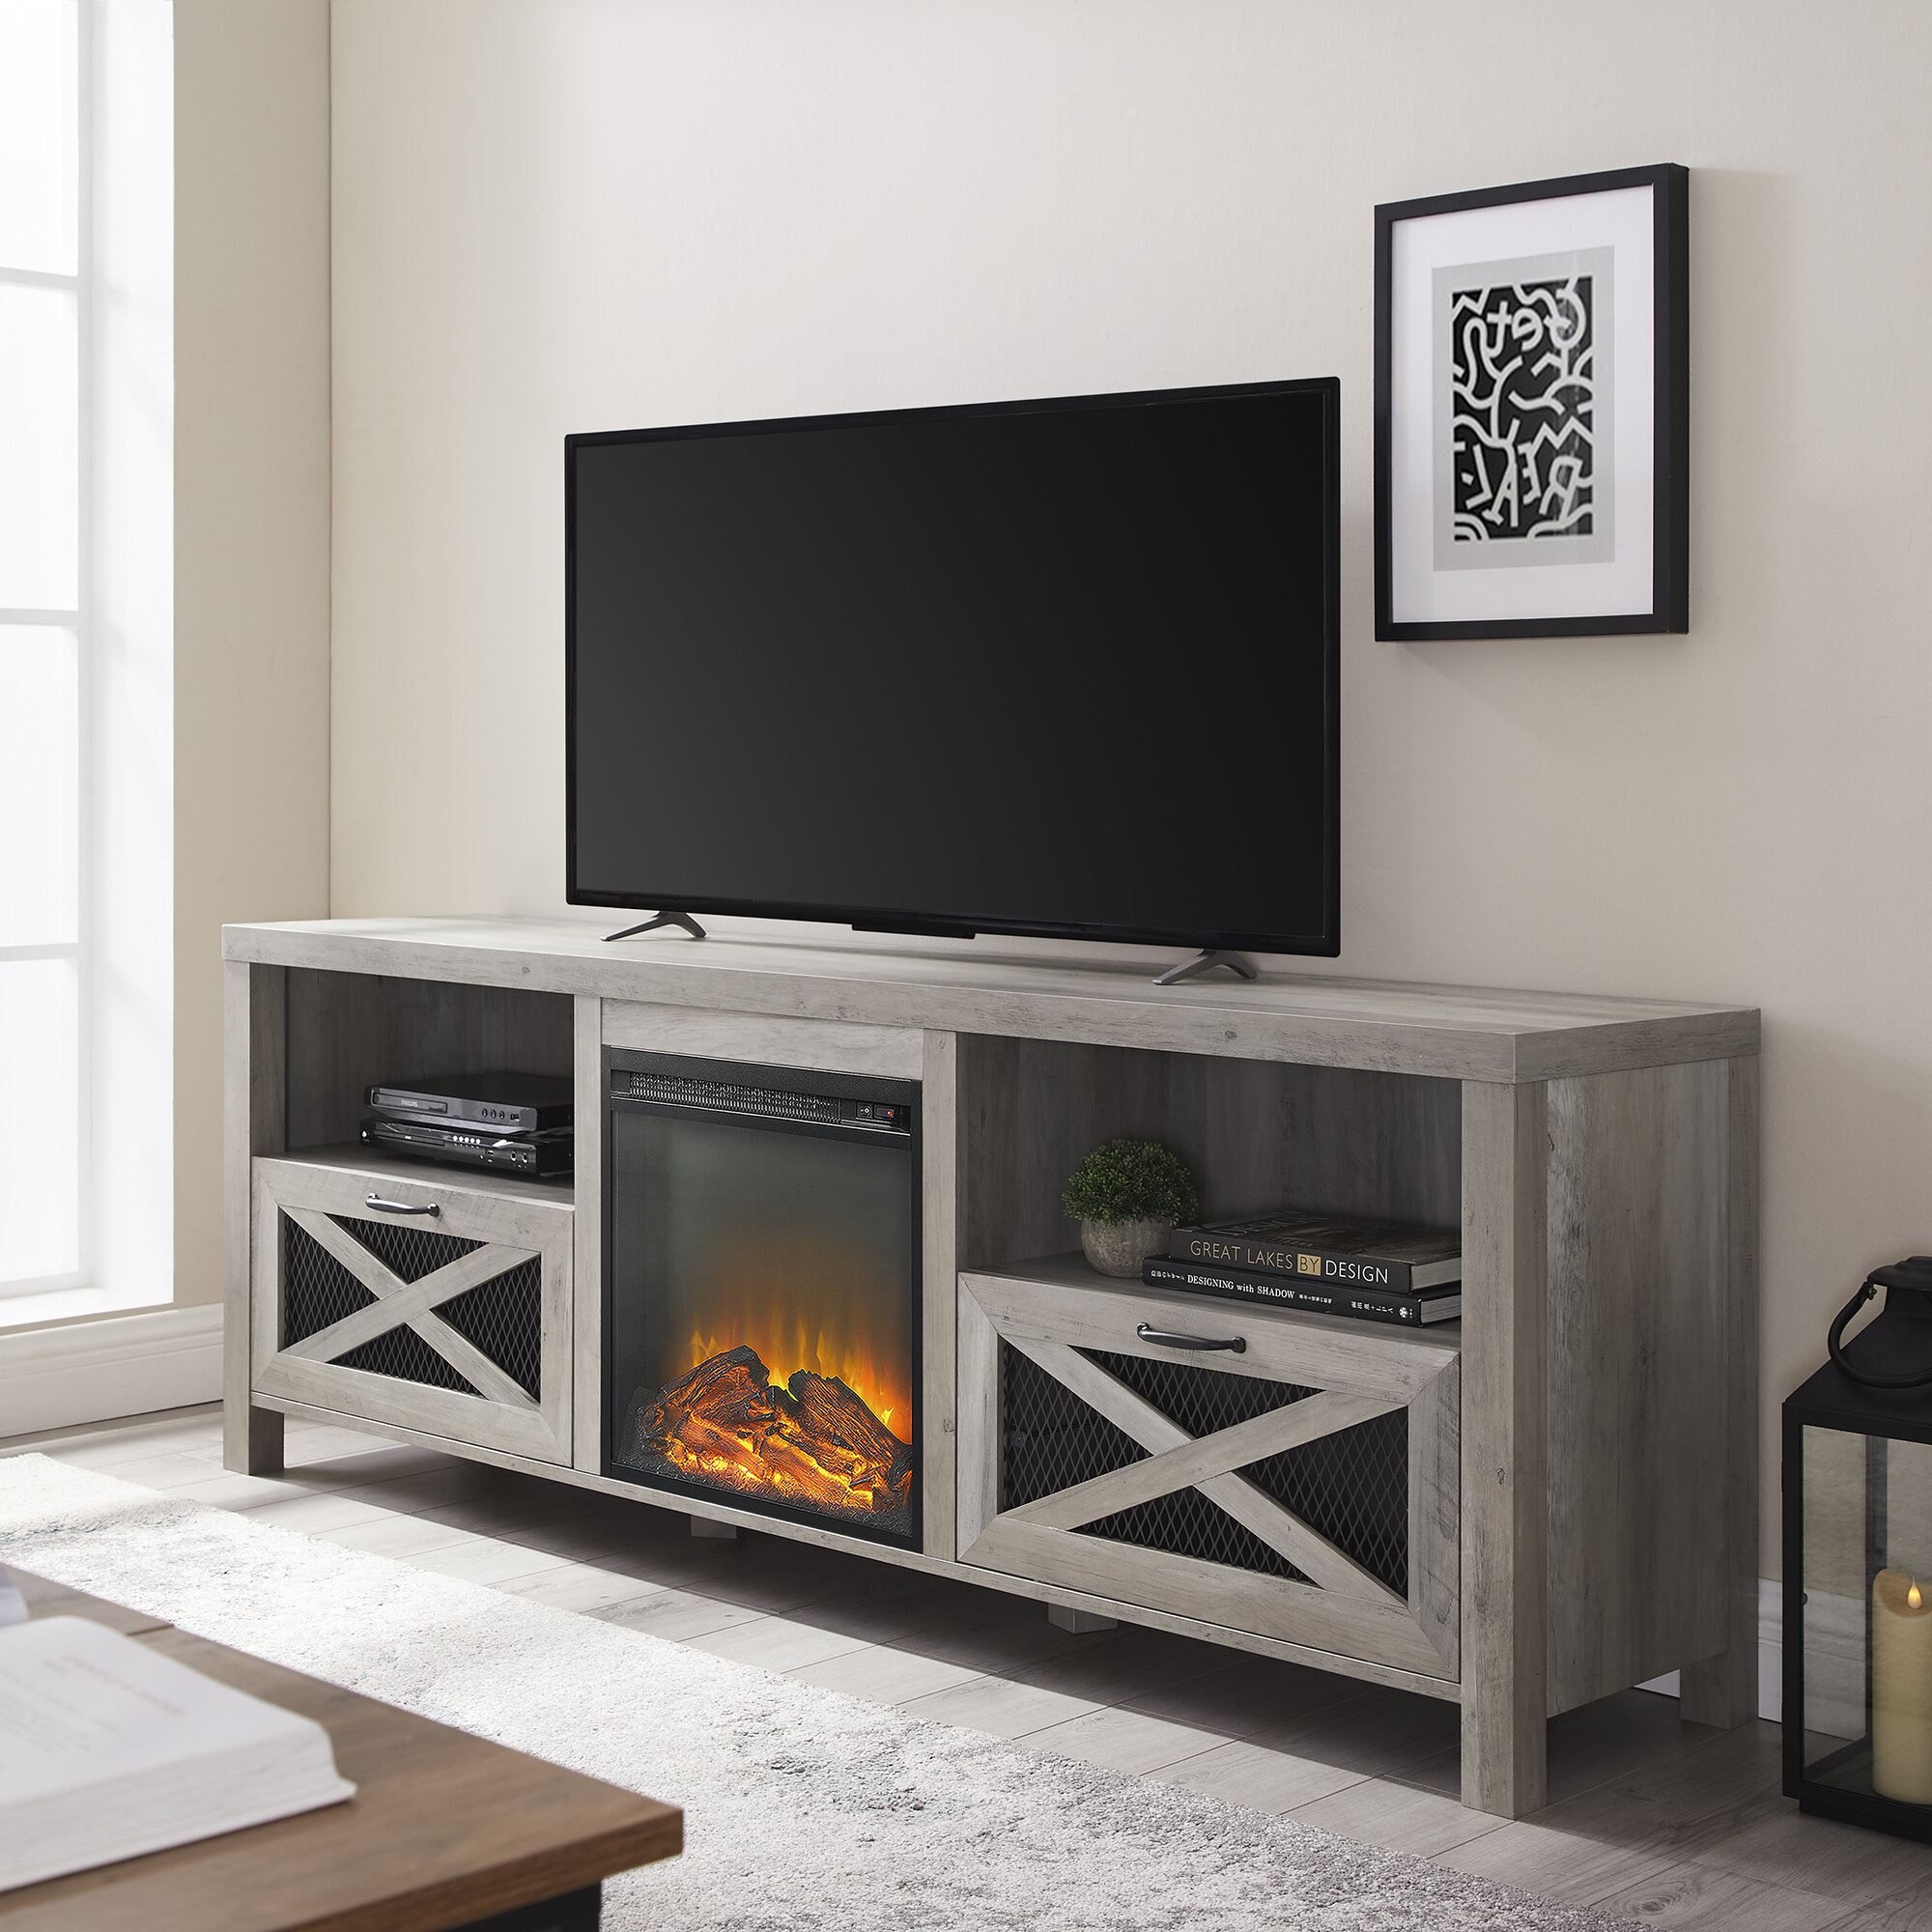 "65 Inch Electric Fireplace Lovely Tansey Tv Stand for Tvs Up to 70"" with Electric Fireplace"